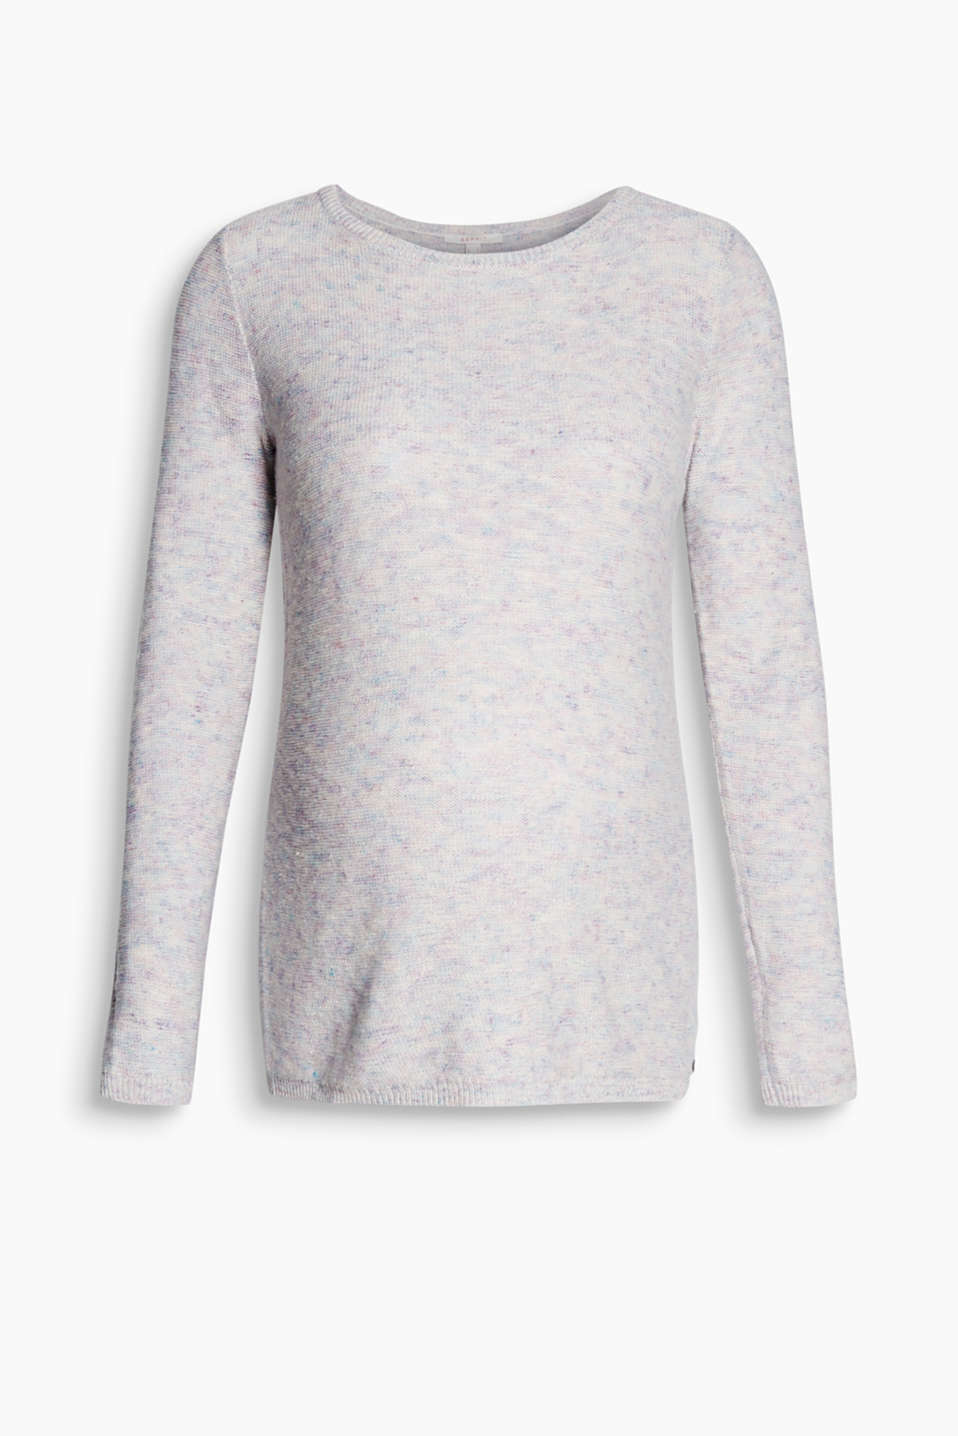 Light and airy jumper made of a linen blend in a trendy melange look